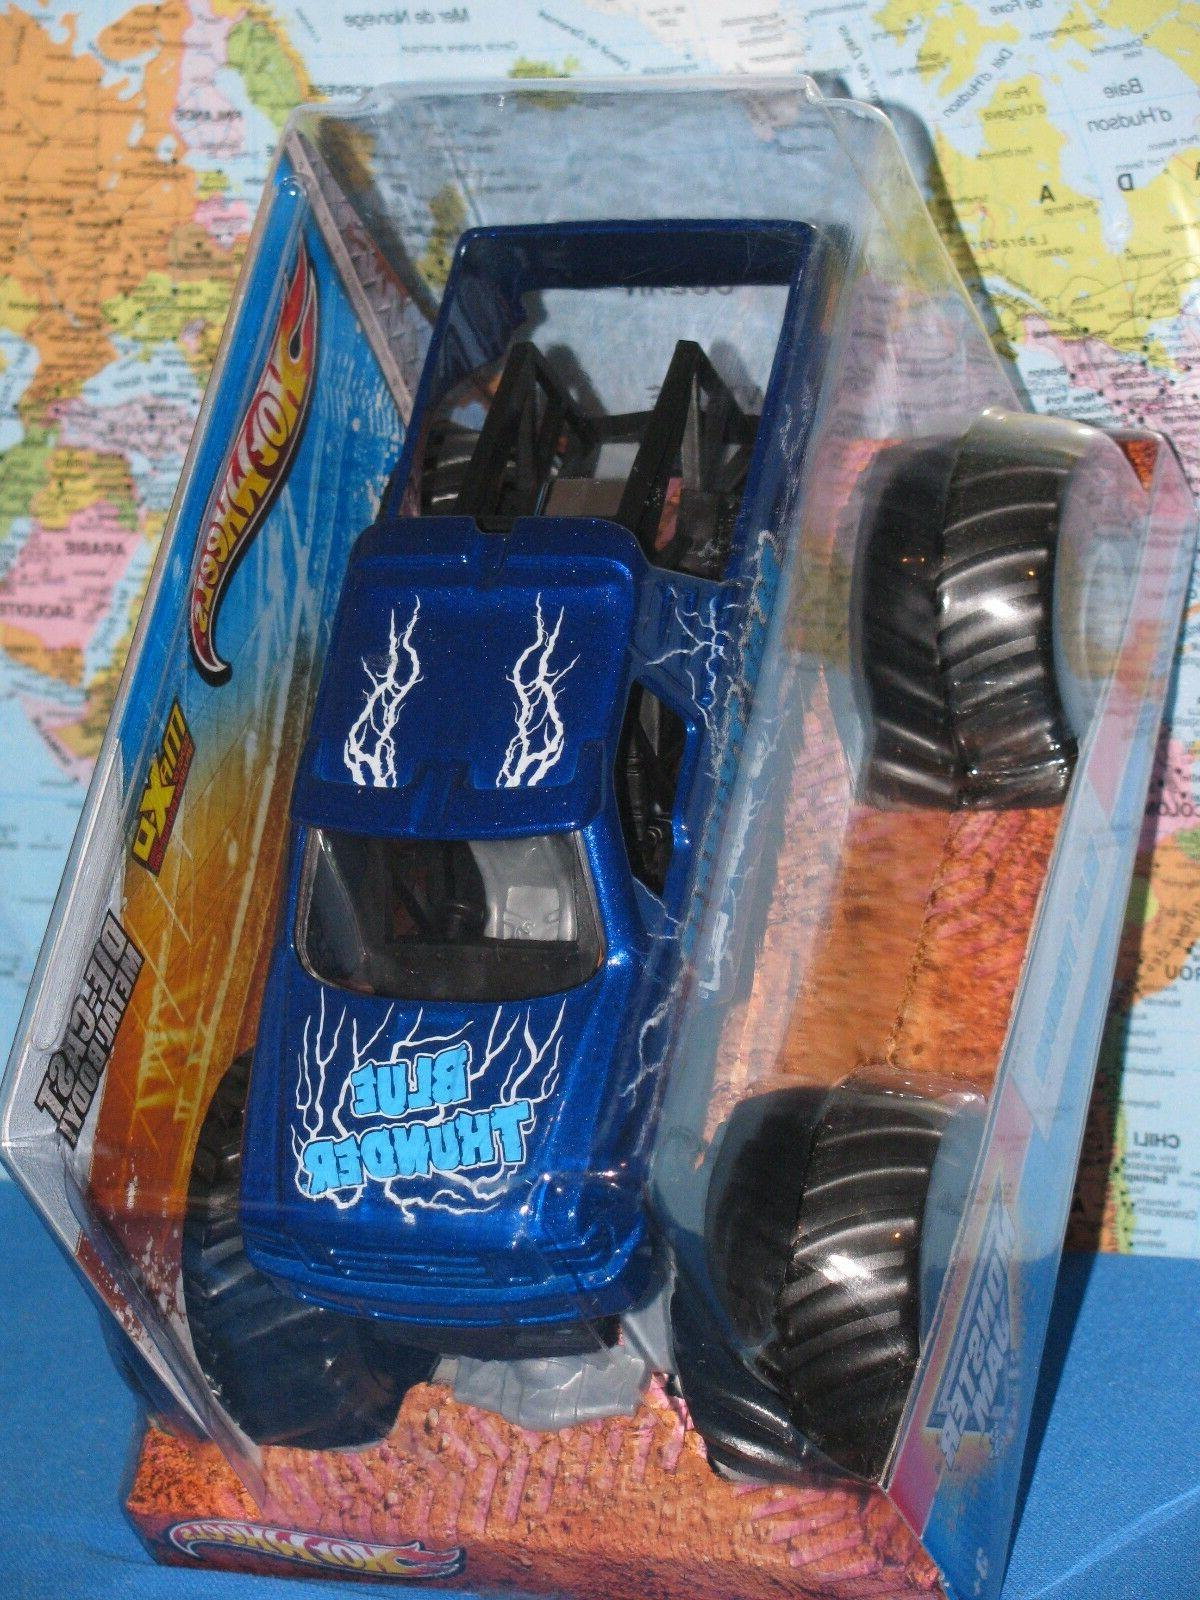 1/24 HOT JAM BLUE THUNDER DIE-CAST PARTS